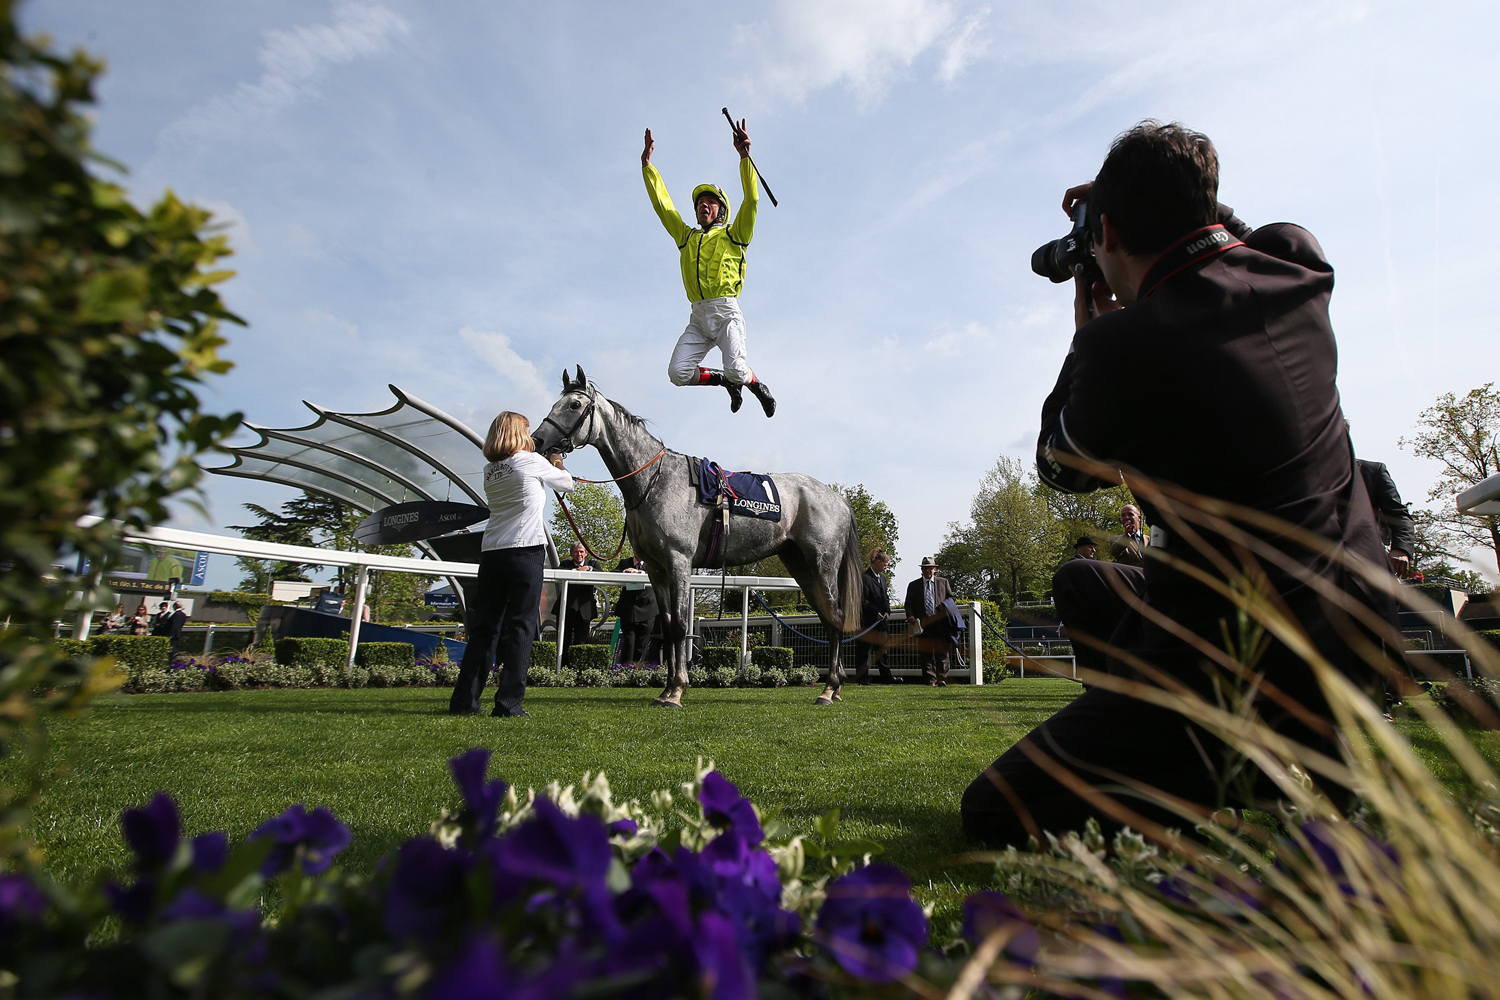 Frankie Dettori celebrates after ridding Tac De Boistron to victory in The Longines Sagari Stakes at Ascot racecourse on April 30, 2014 in Ascot, England.